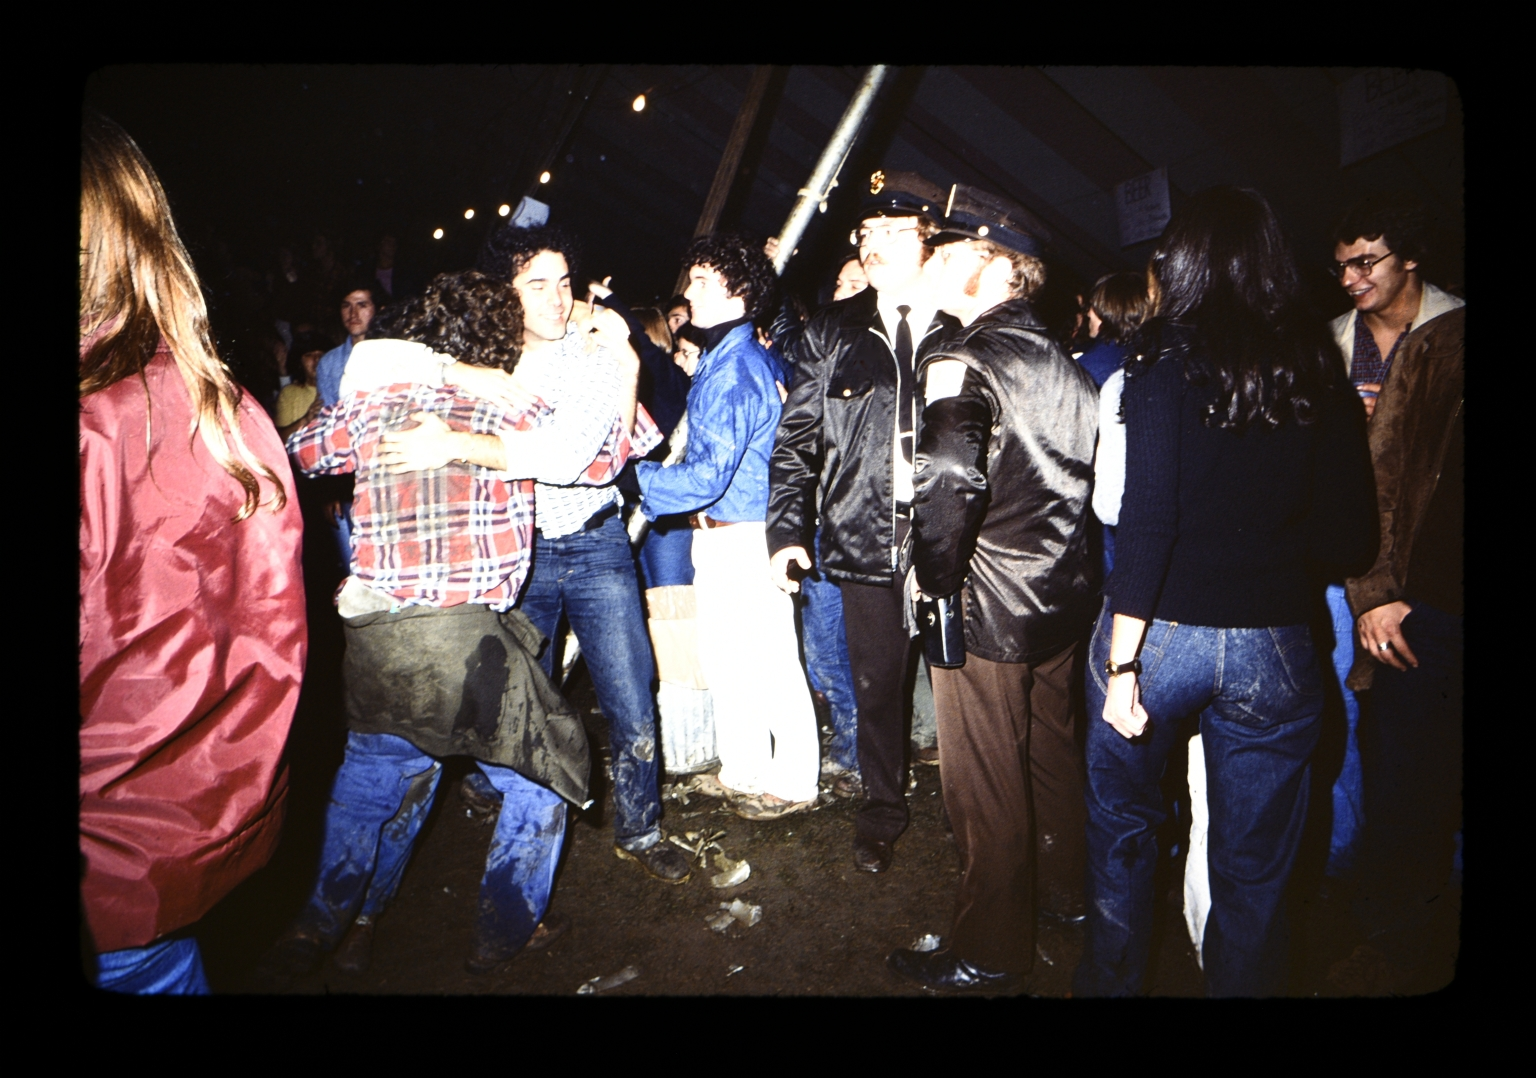 Unidentified students during a party beside security